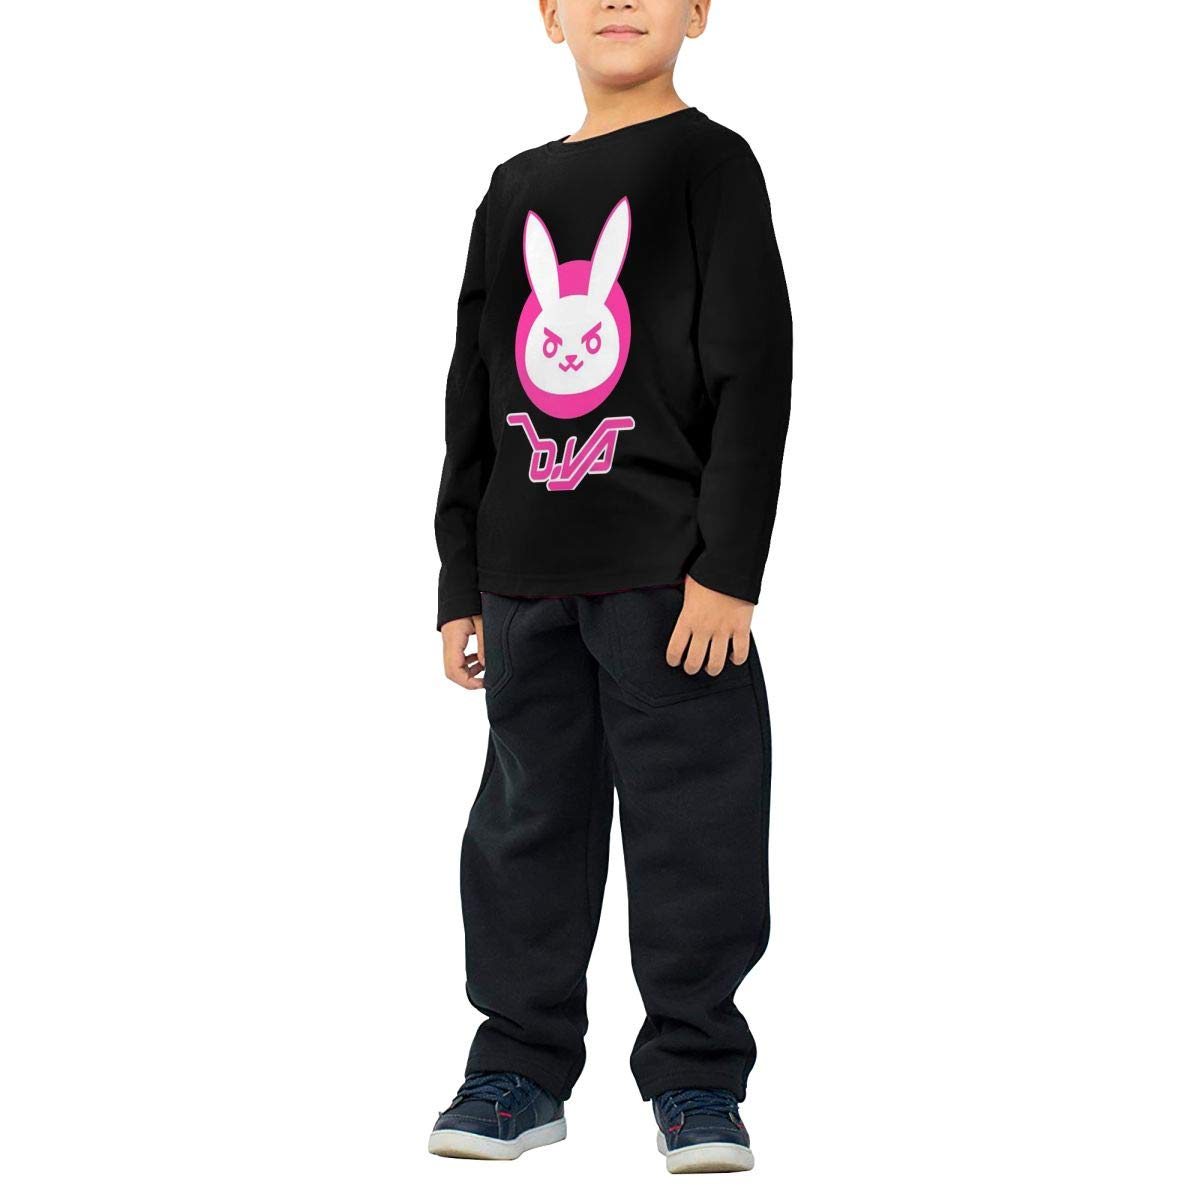 2-6 Year Old Childrens Long Sleeve T-Shirt Vintage Unique Long Sleeve T Overwatch Dva Bunny Logo Black